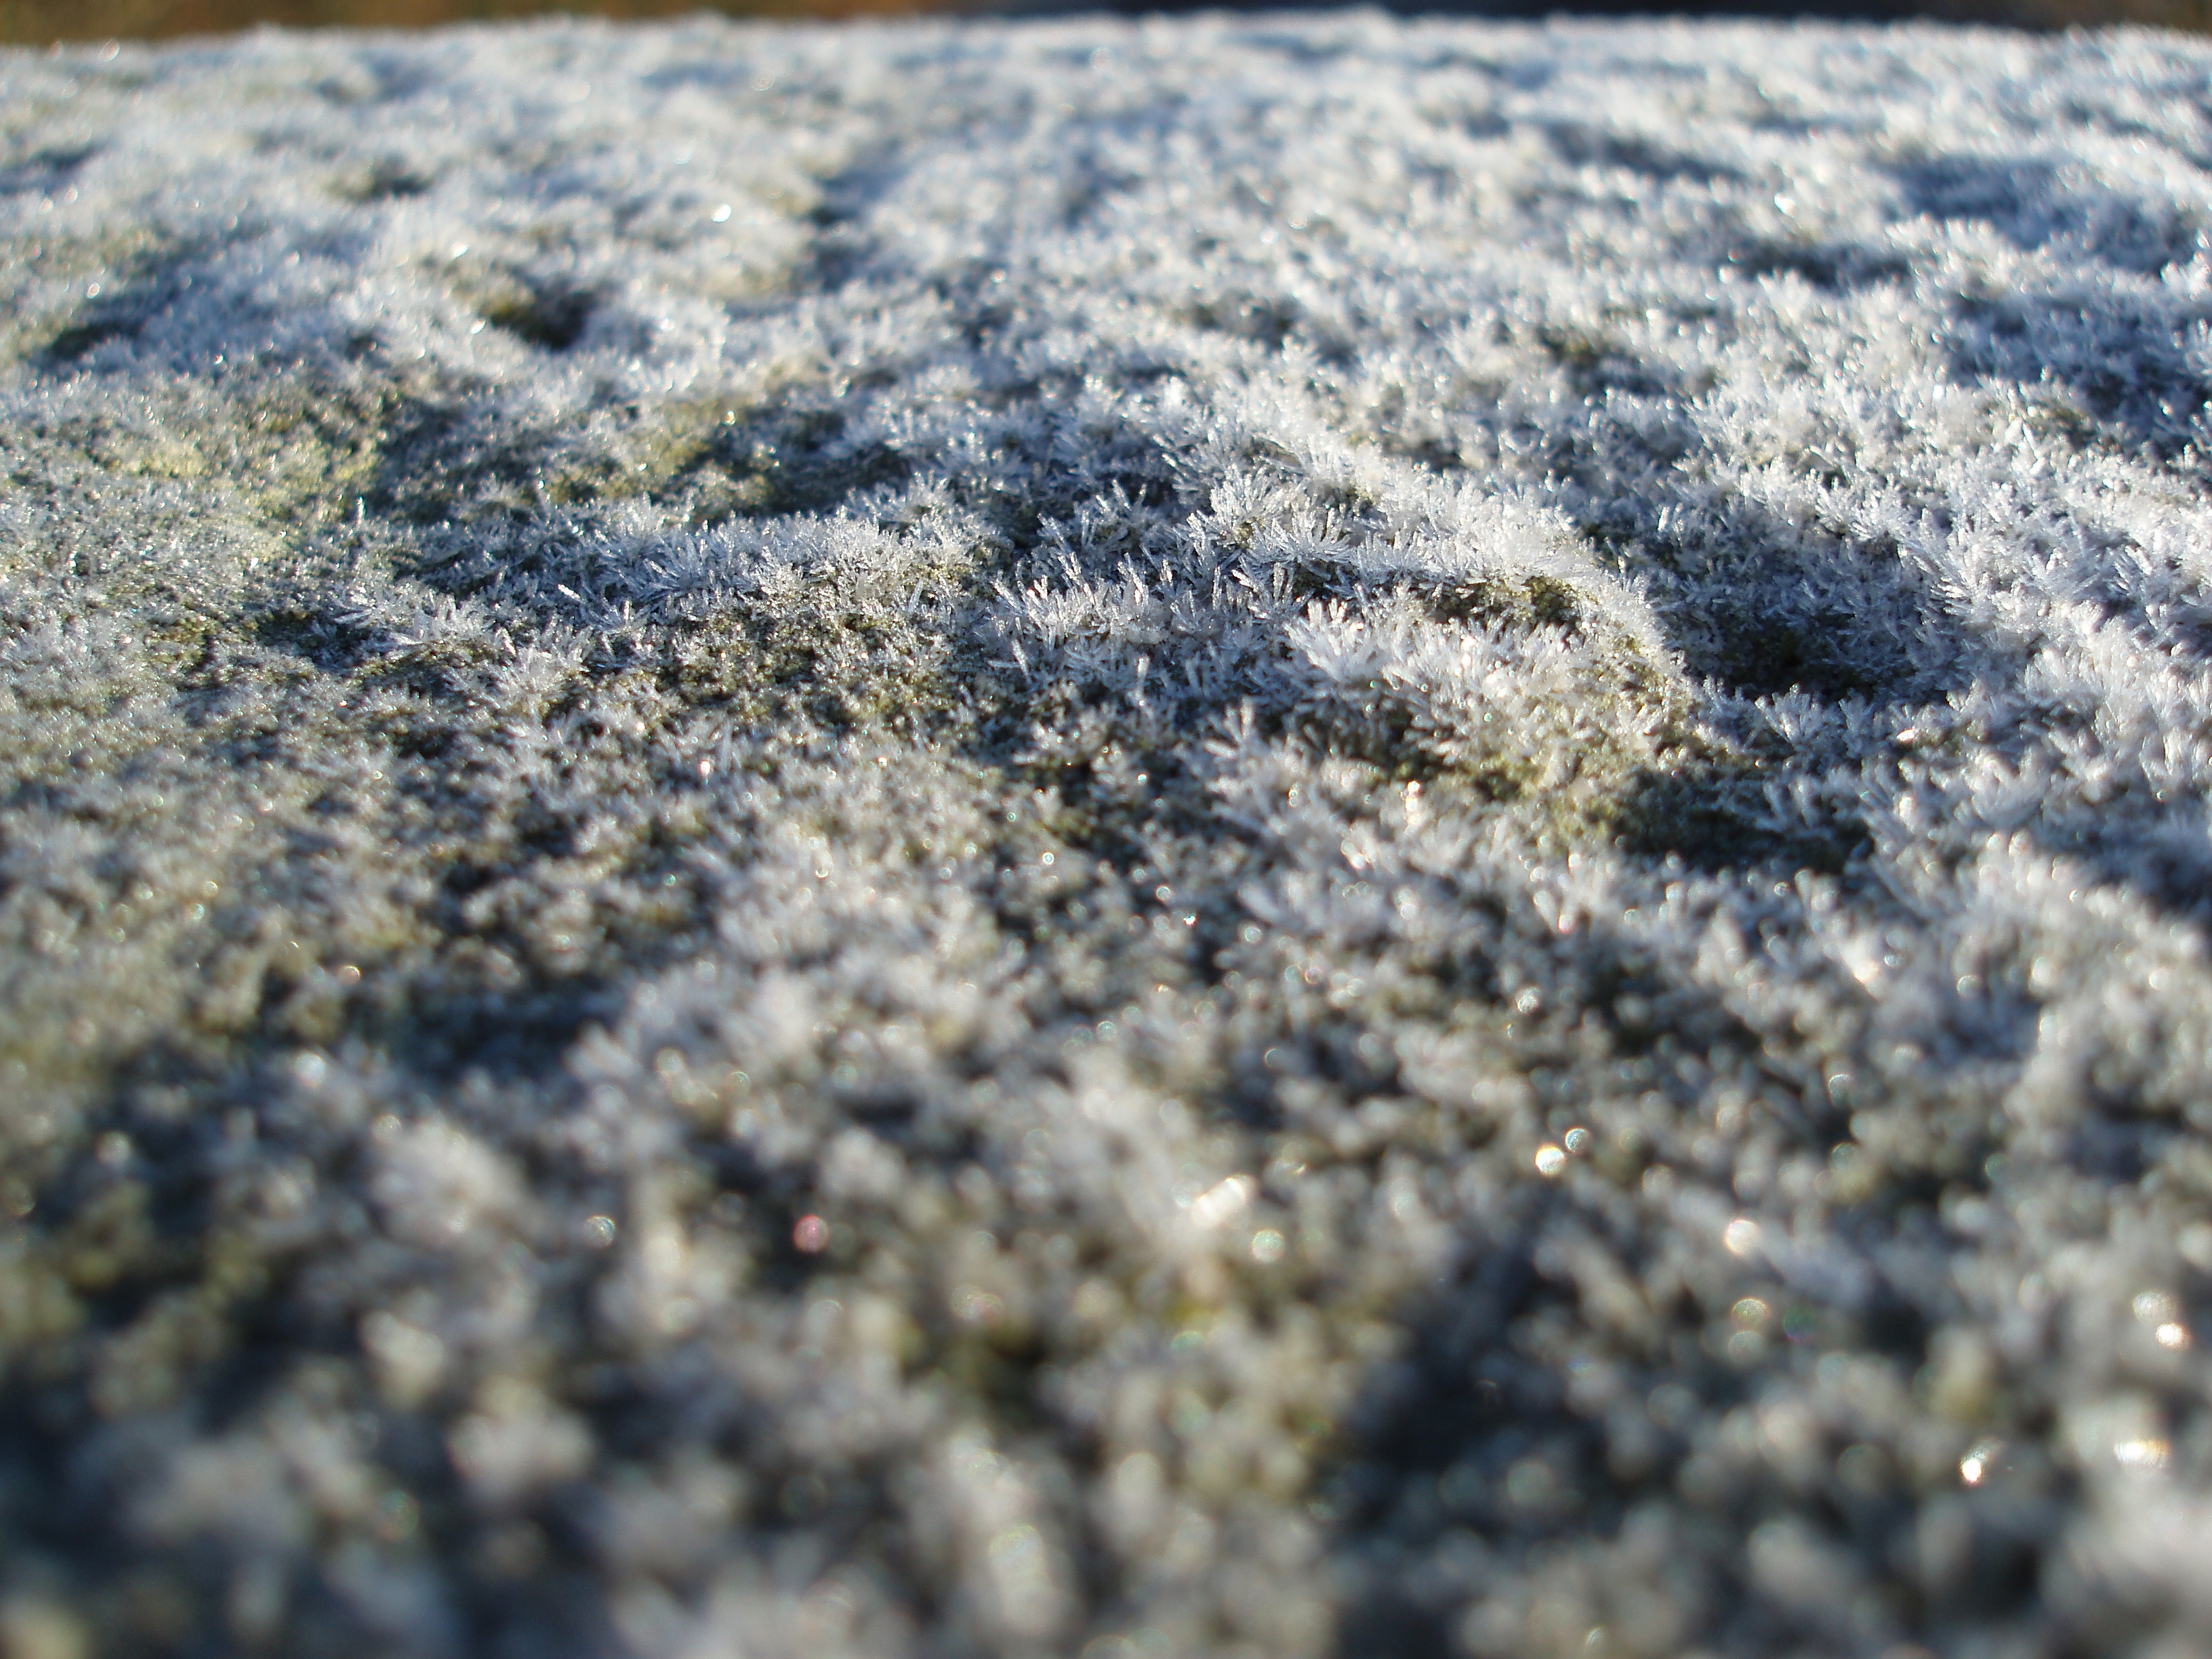 macro image of frost crystals growing on a stone wall